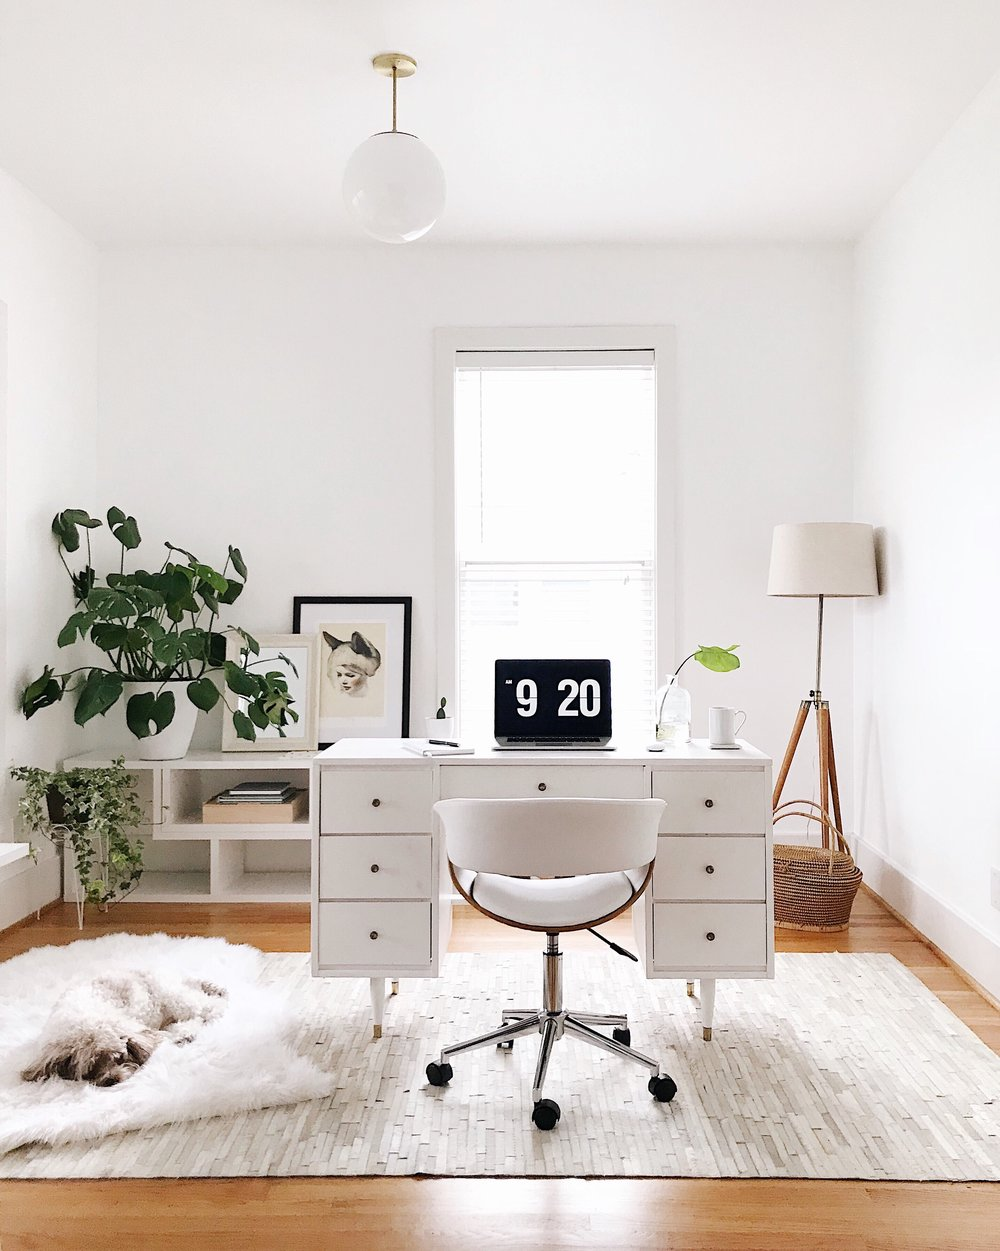 Vintage Desk,  Luna Pendant from Schoolhouse Electric  and rug from  RugsUSA .